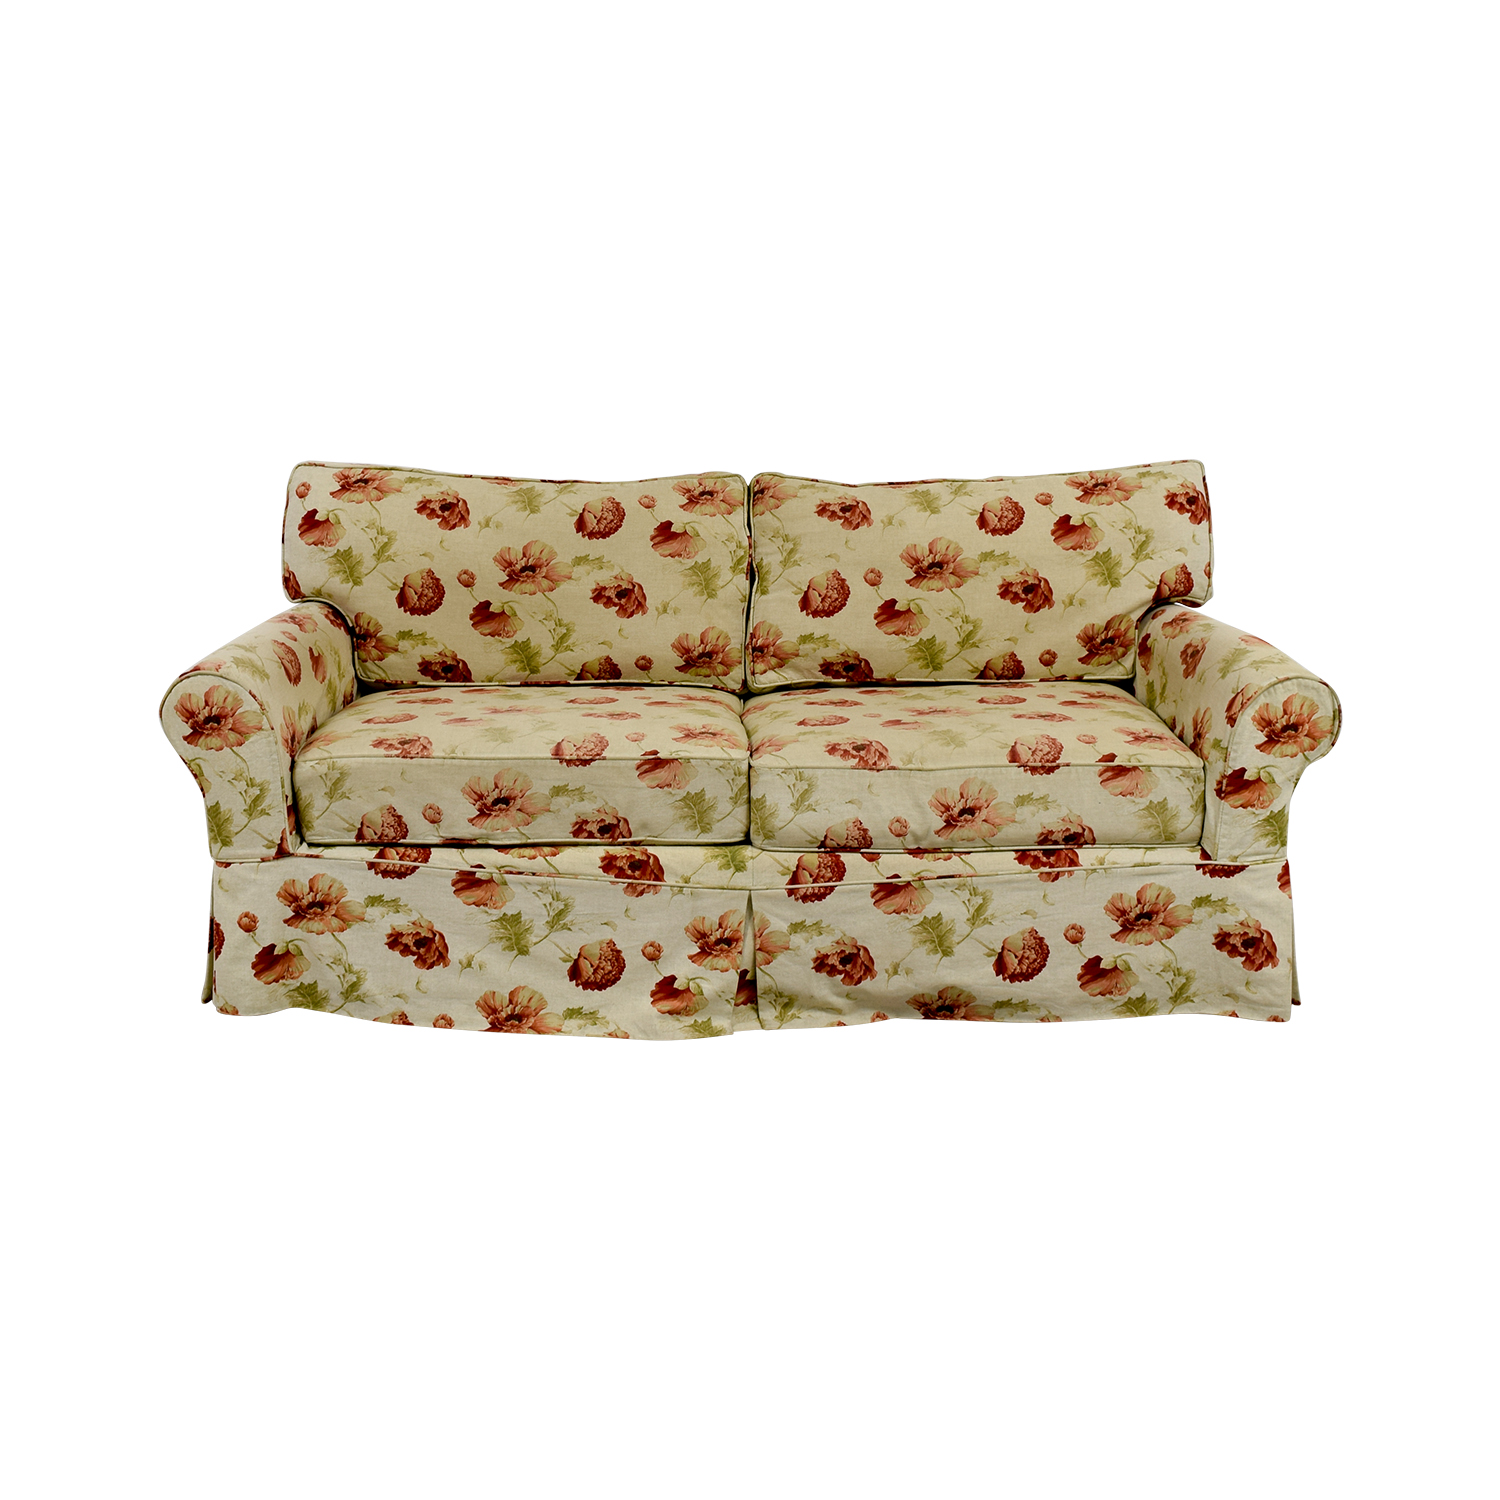 Buy sofa quality used furniture Slipper loveseat